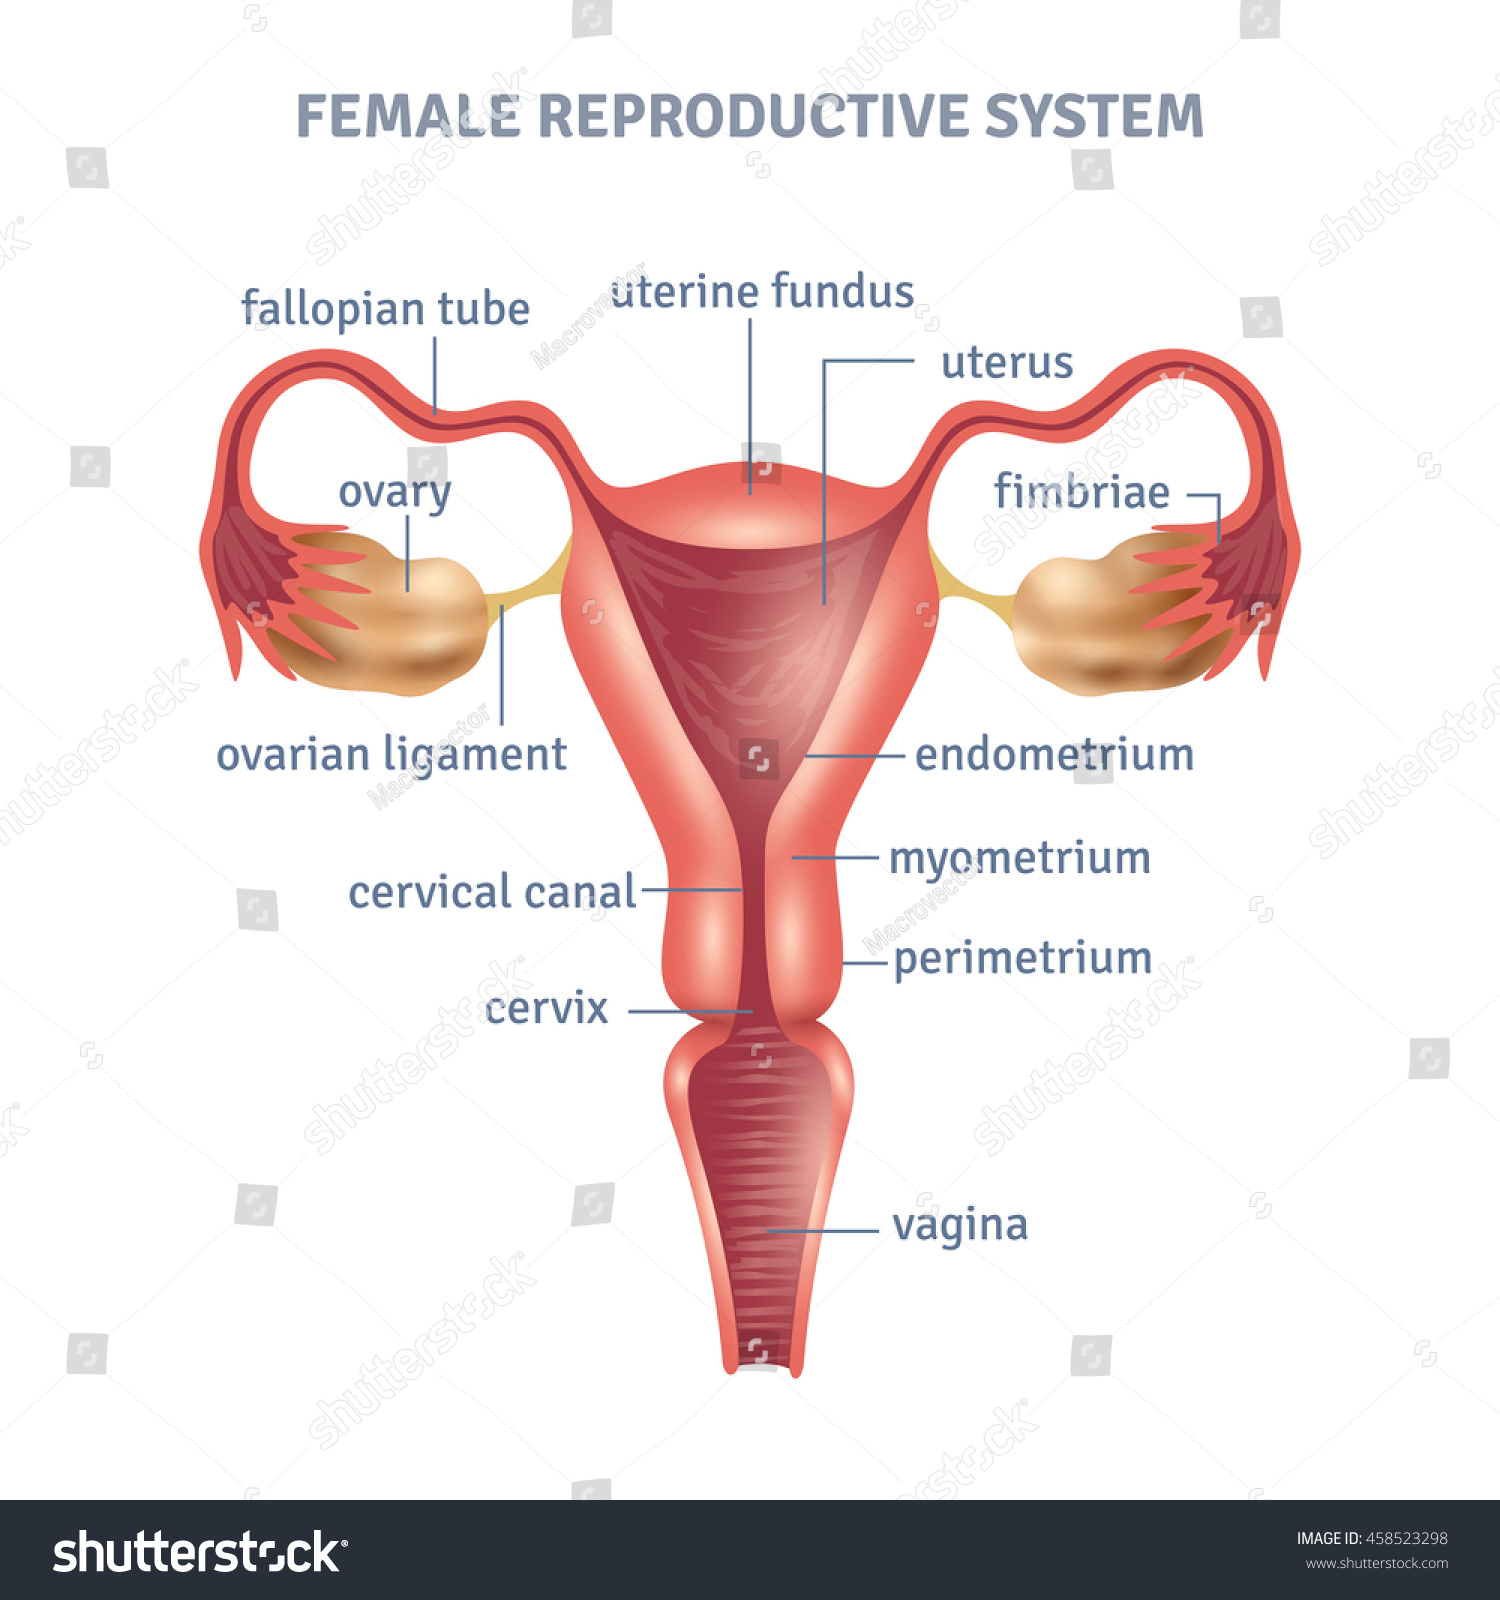 Uterus Medical Poster Female Reproductive System Stock Vector